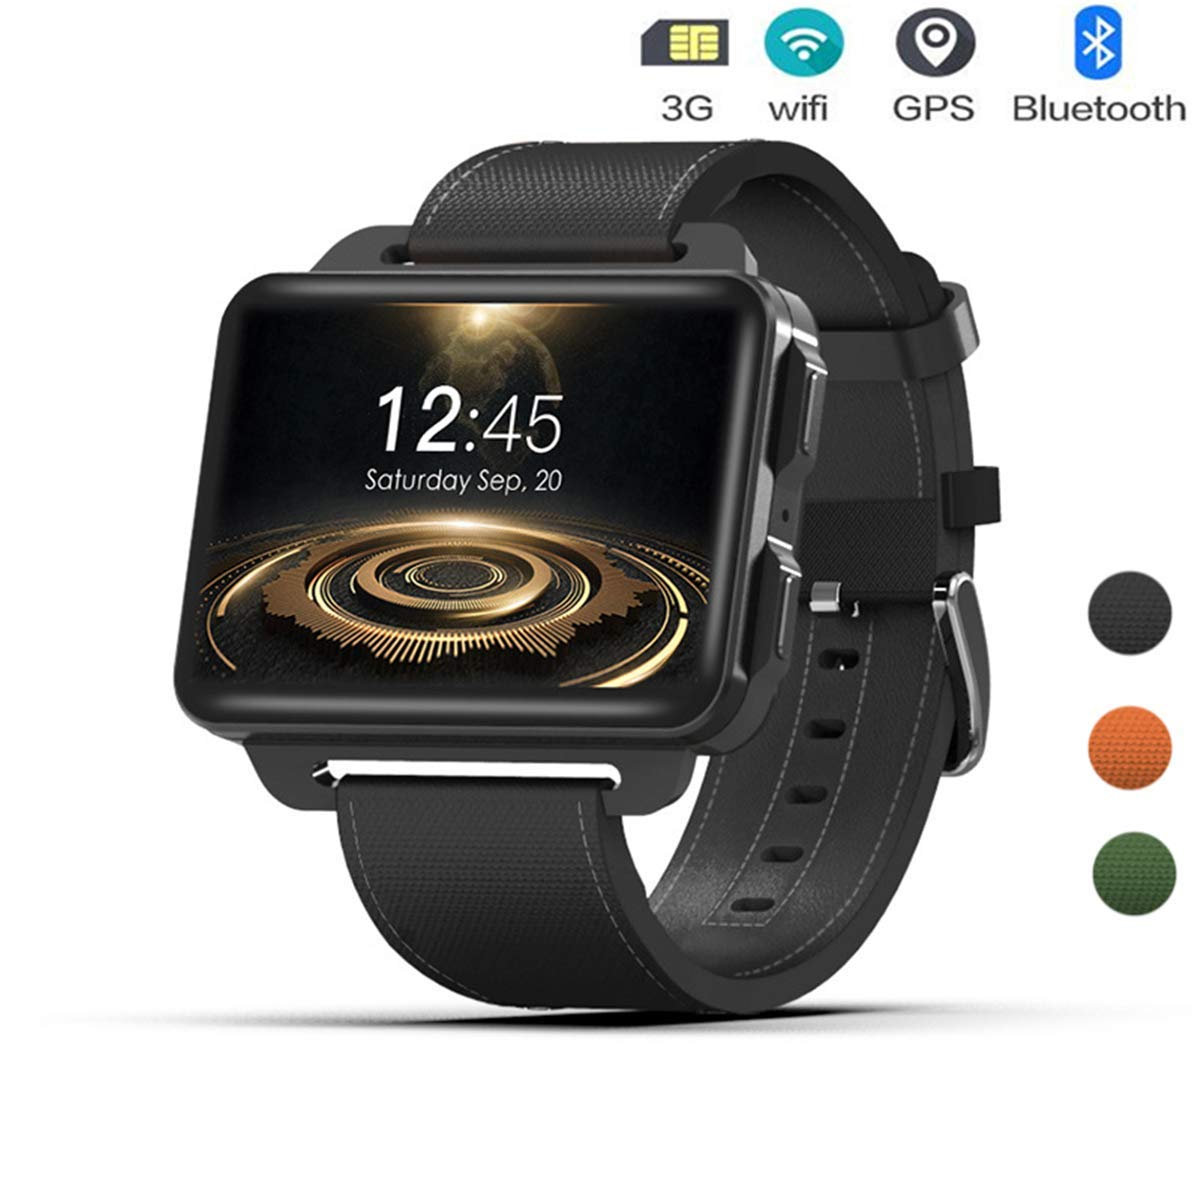 ACZZ 3G Smart Watch Phone, Mt6580 Quad Core 1.3Ghz 1Gb Ram ...